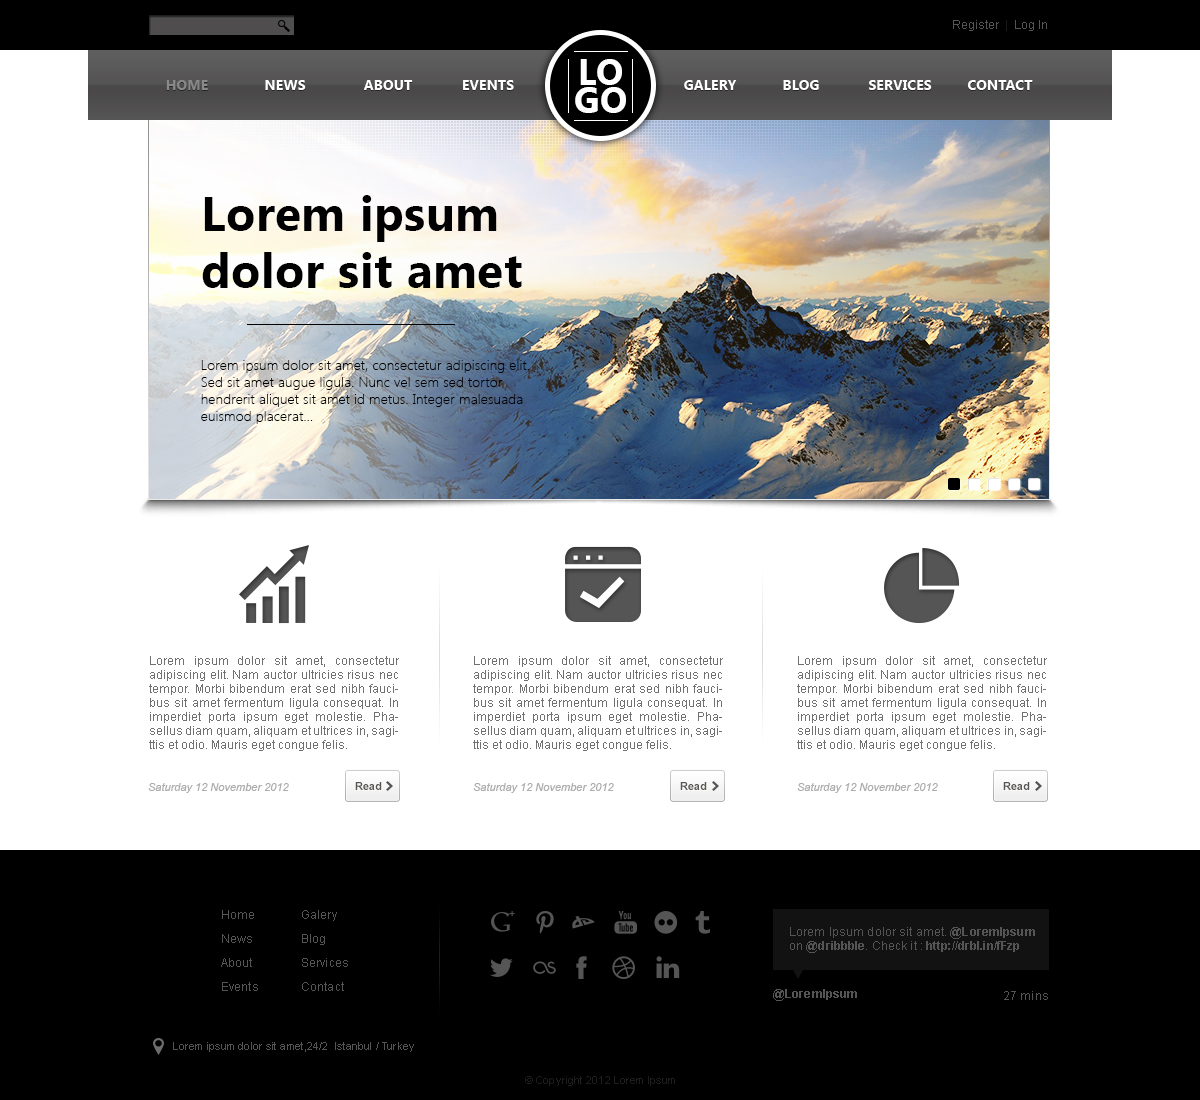 30 Free PSD Web Design Templates | Learn Web Design And Develop!